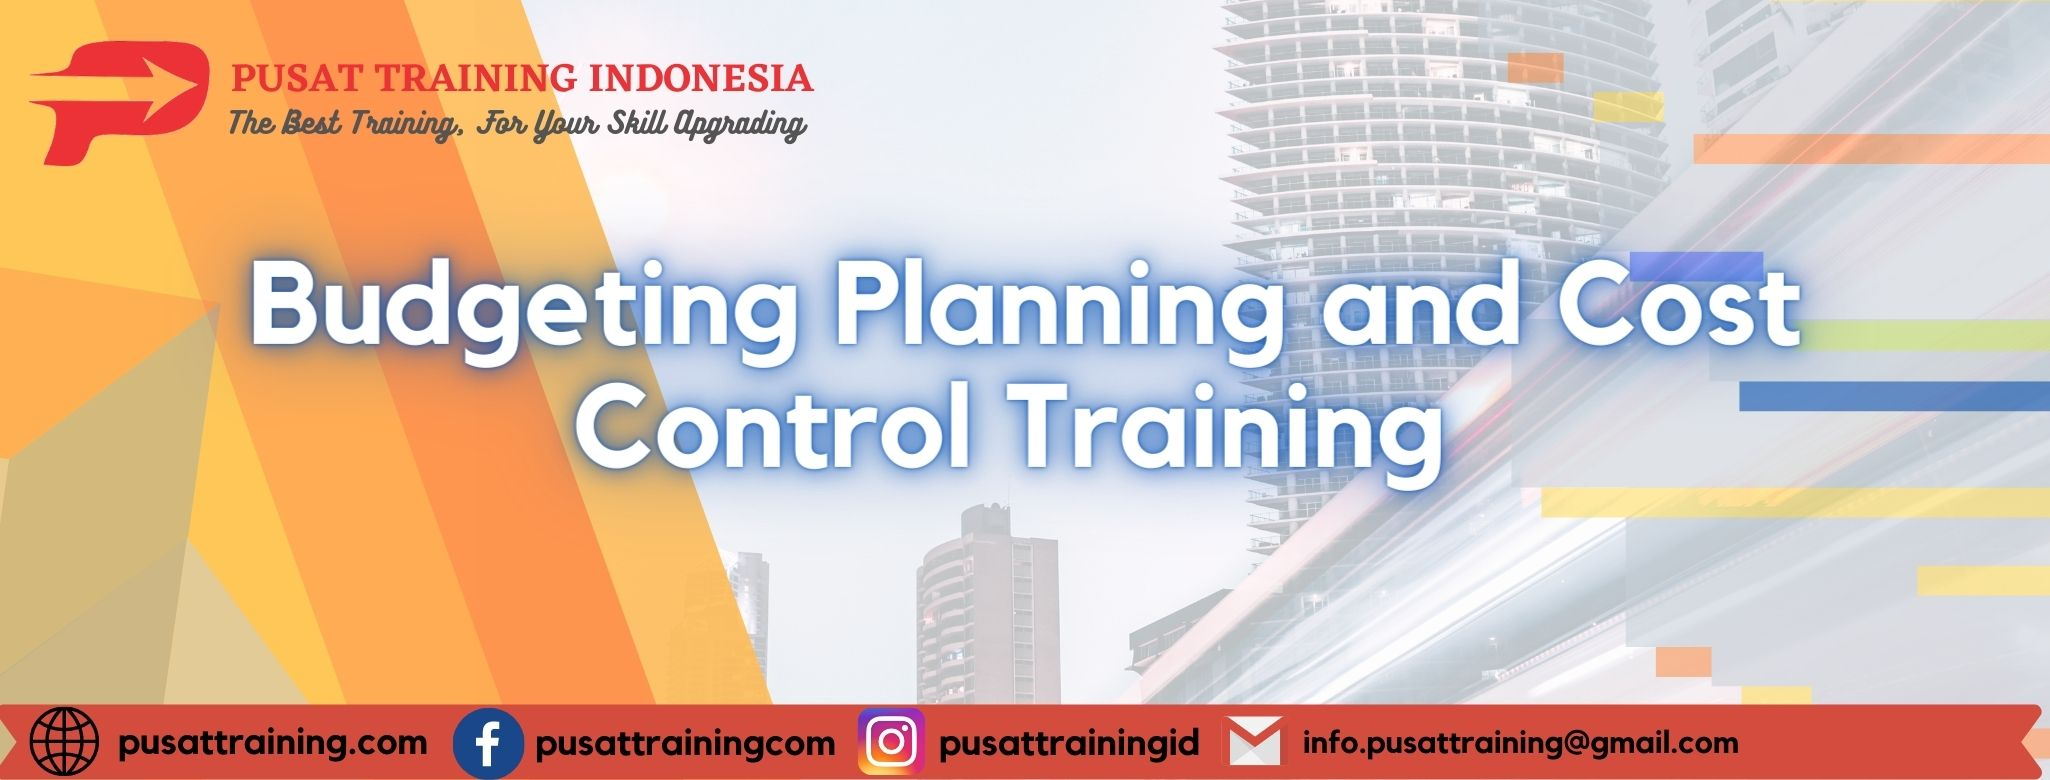 Budgeting-Planning-and-Cost-Control-Training